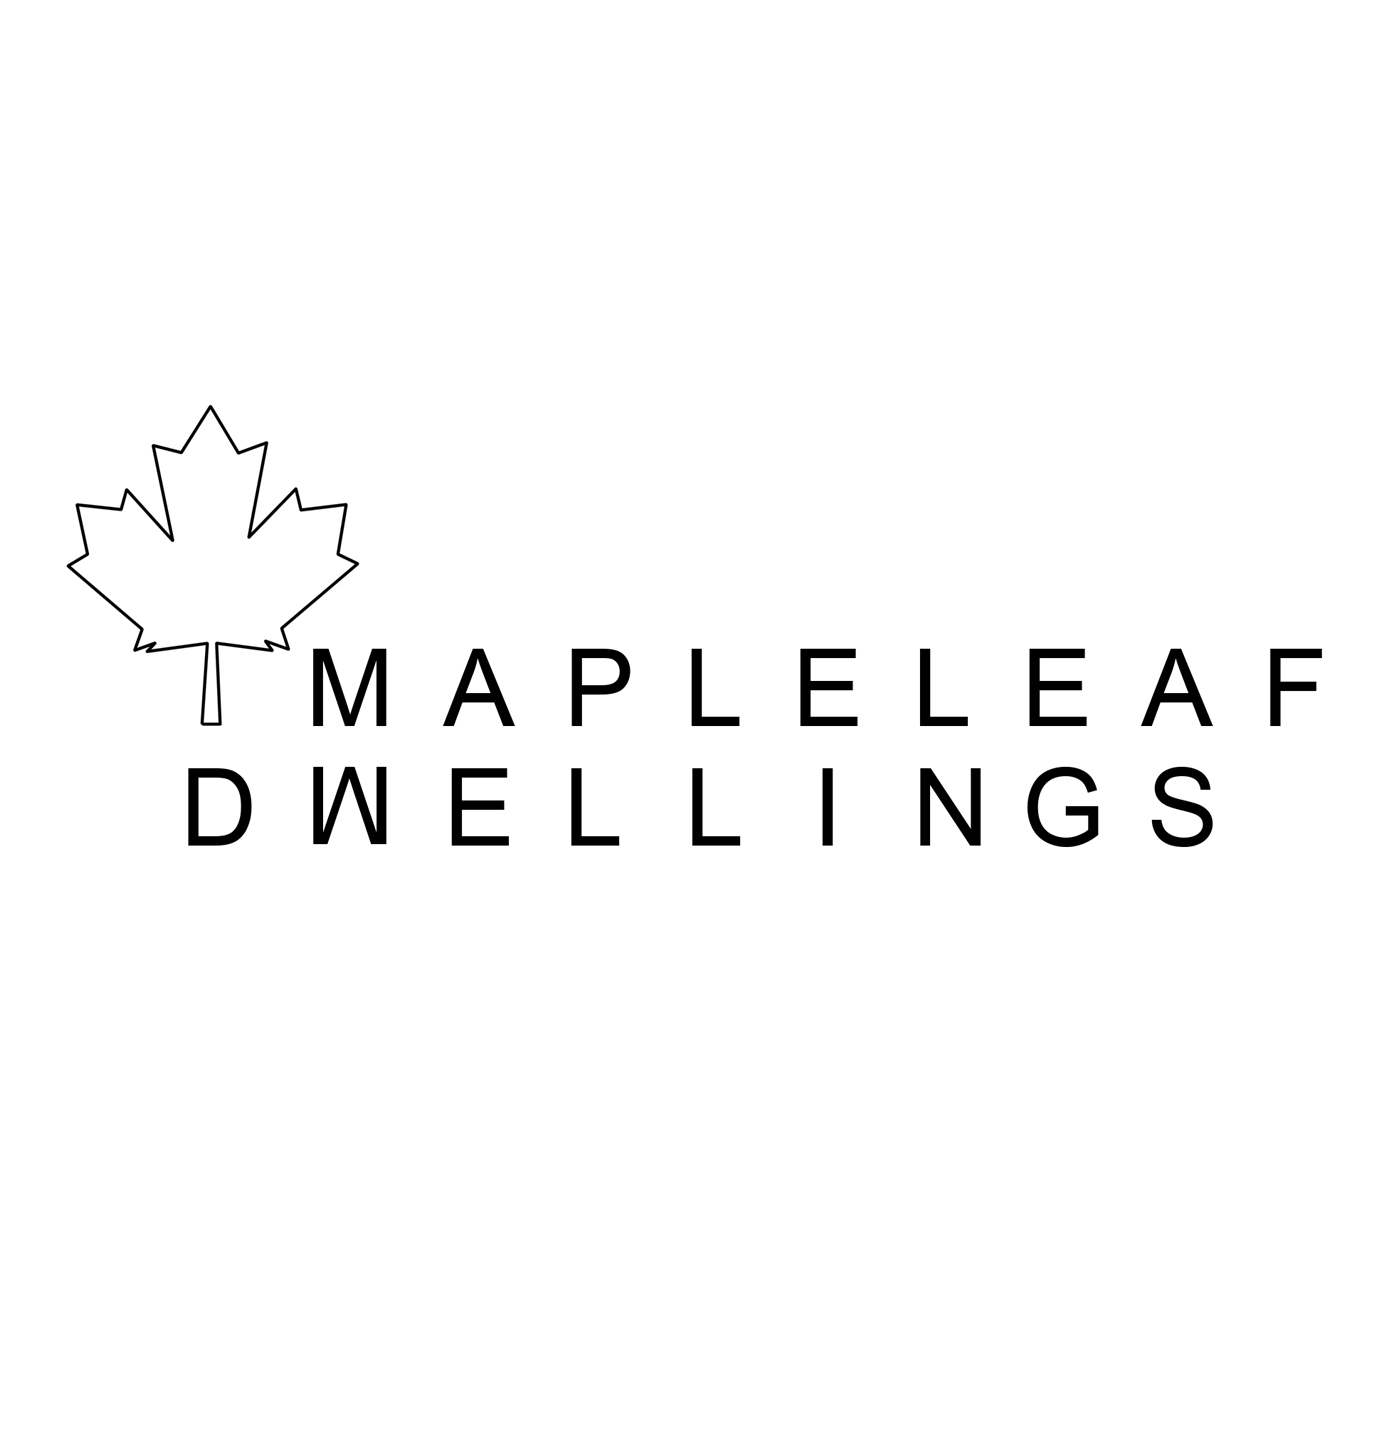 Using the maple leaf but a little simplistic.